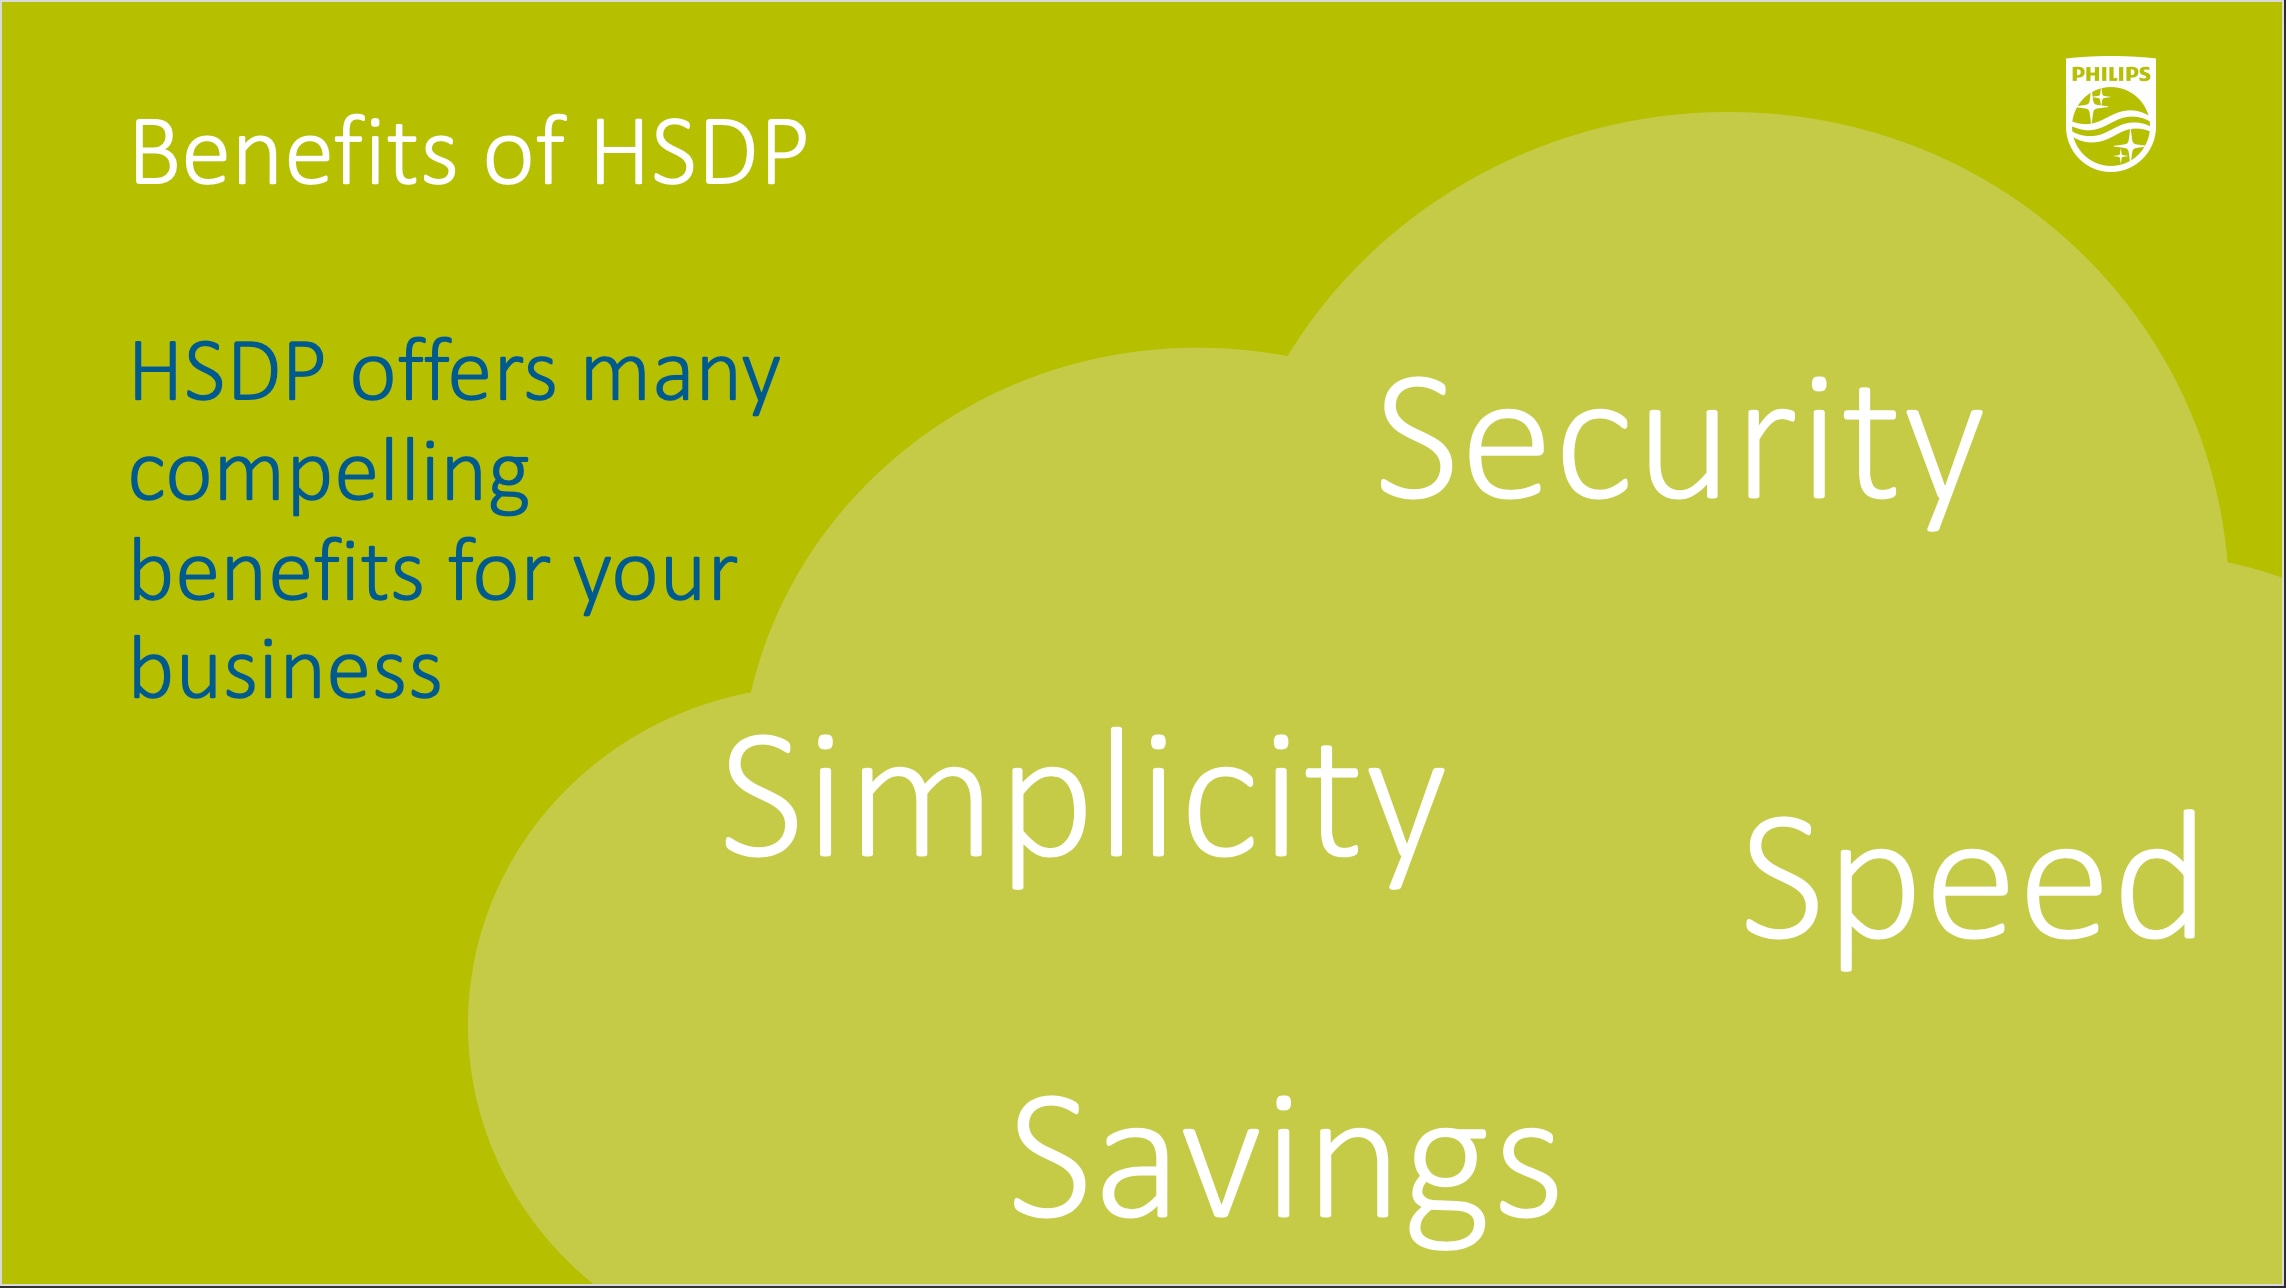 Benefits of HSDP